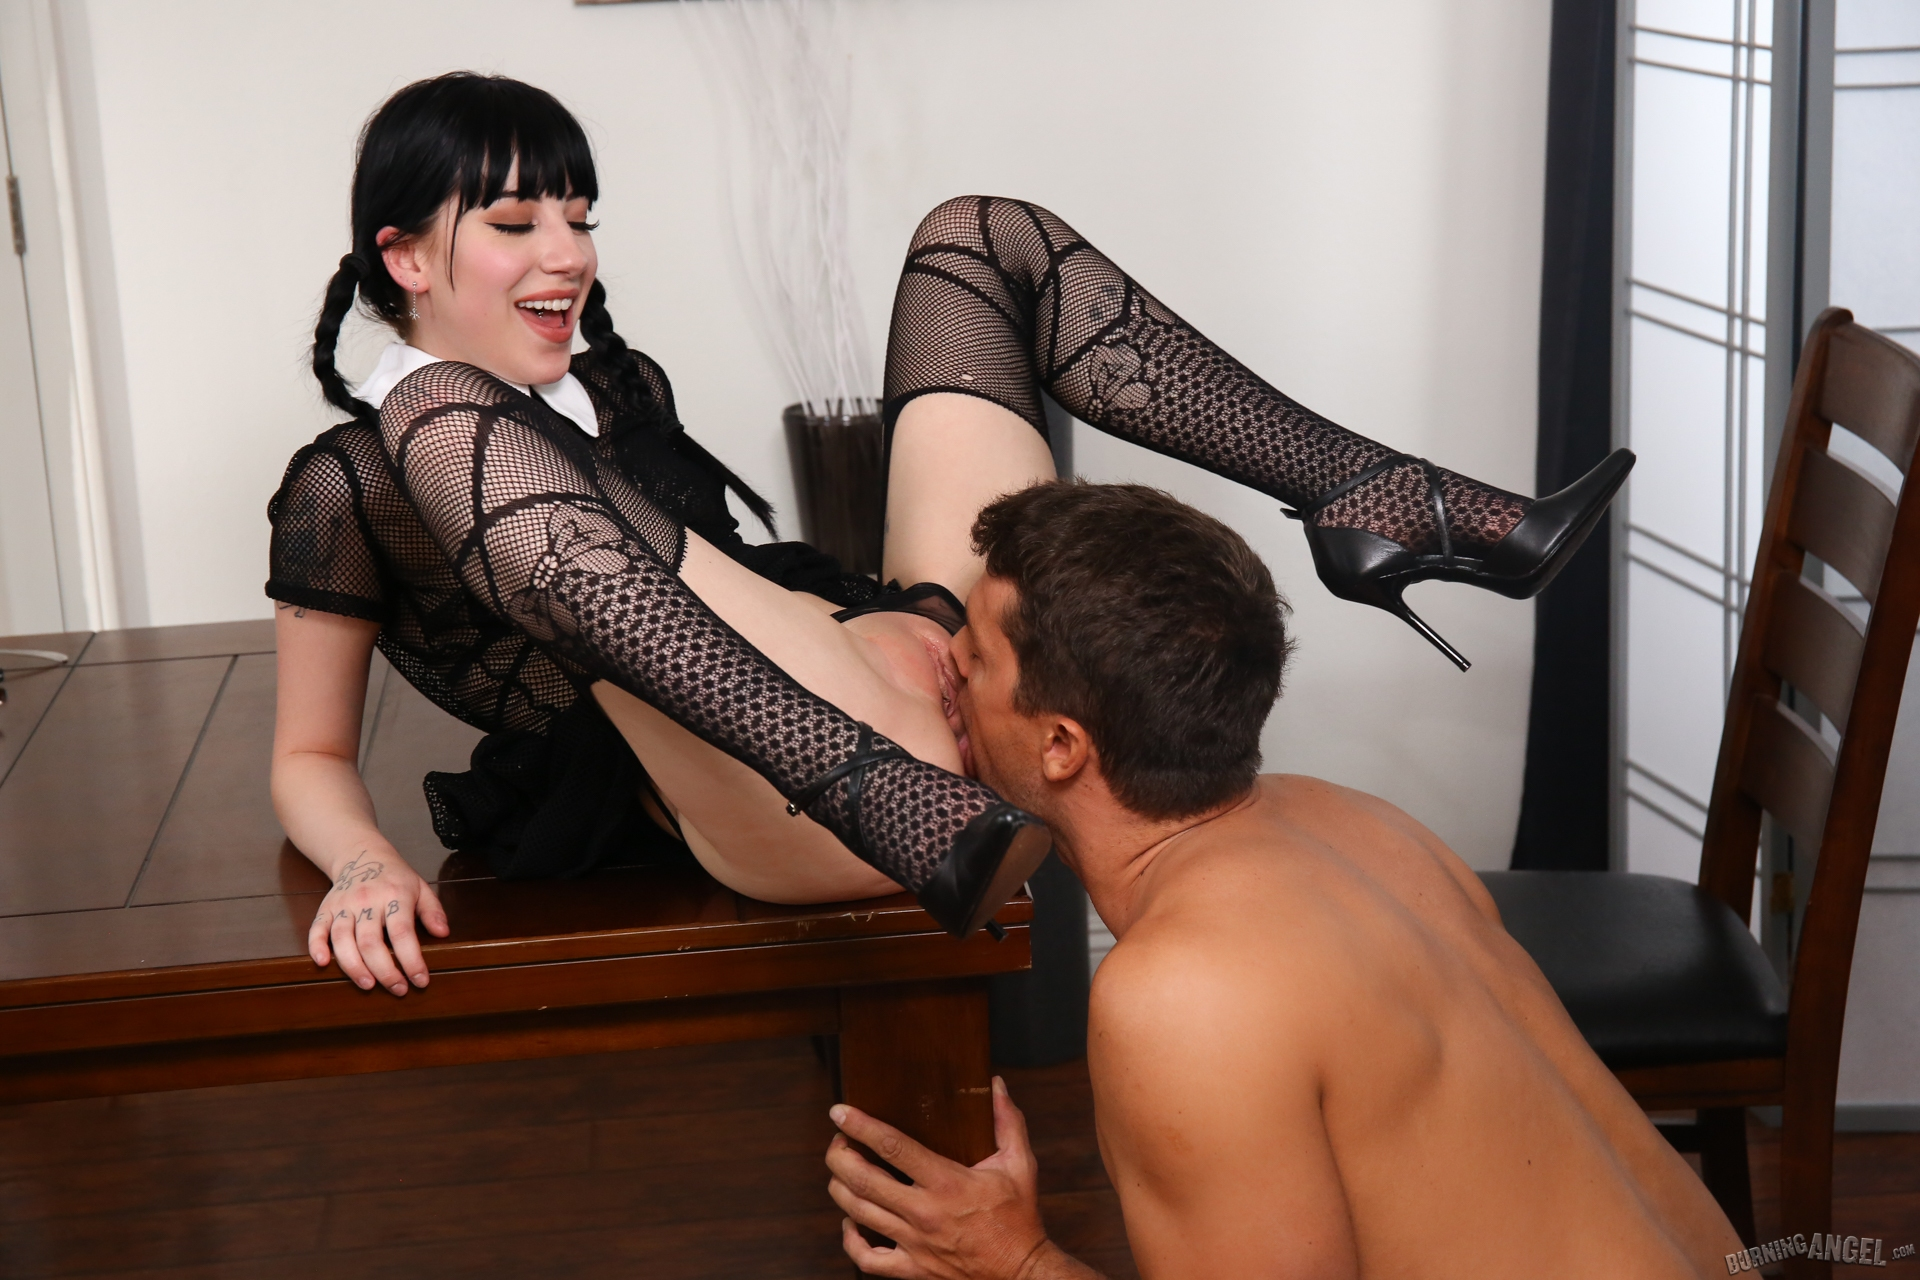 BurningAngel: Charlotte Sartre As Wednesday Addams Gets Pounded At The Dinner Table